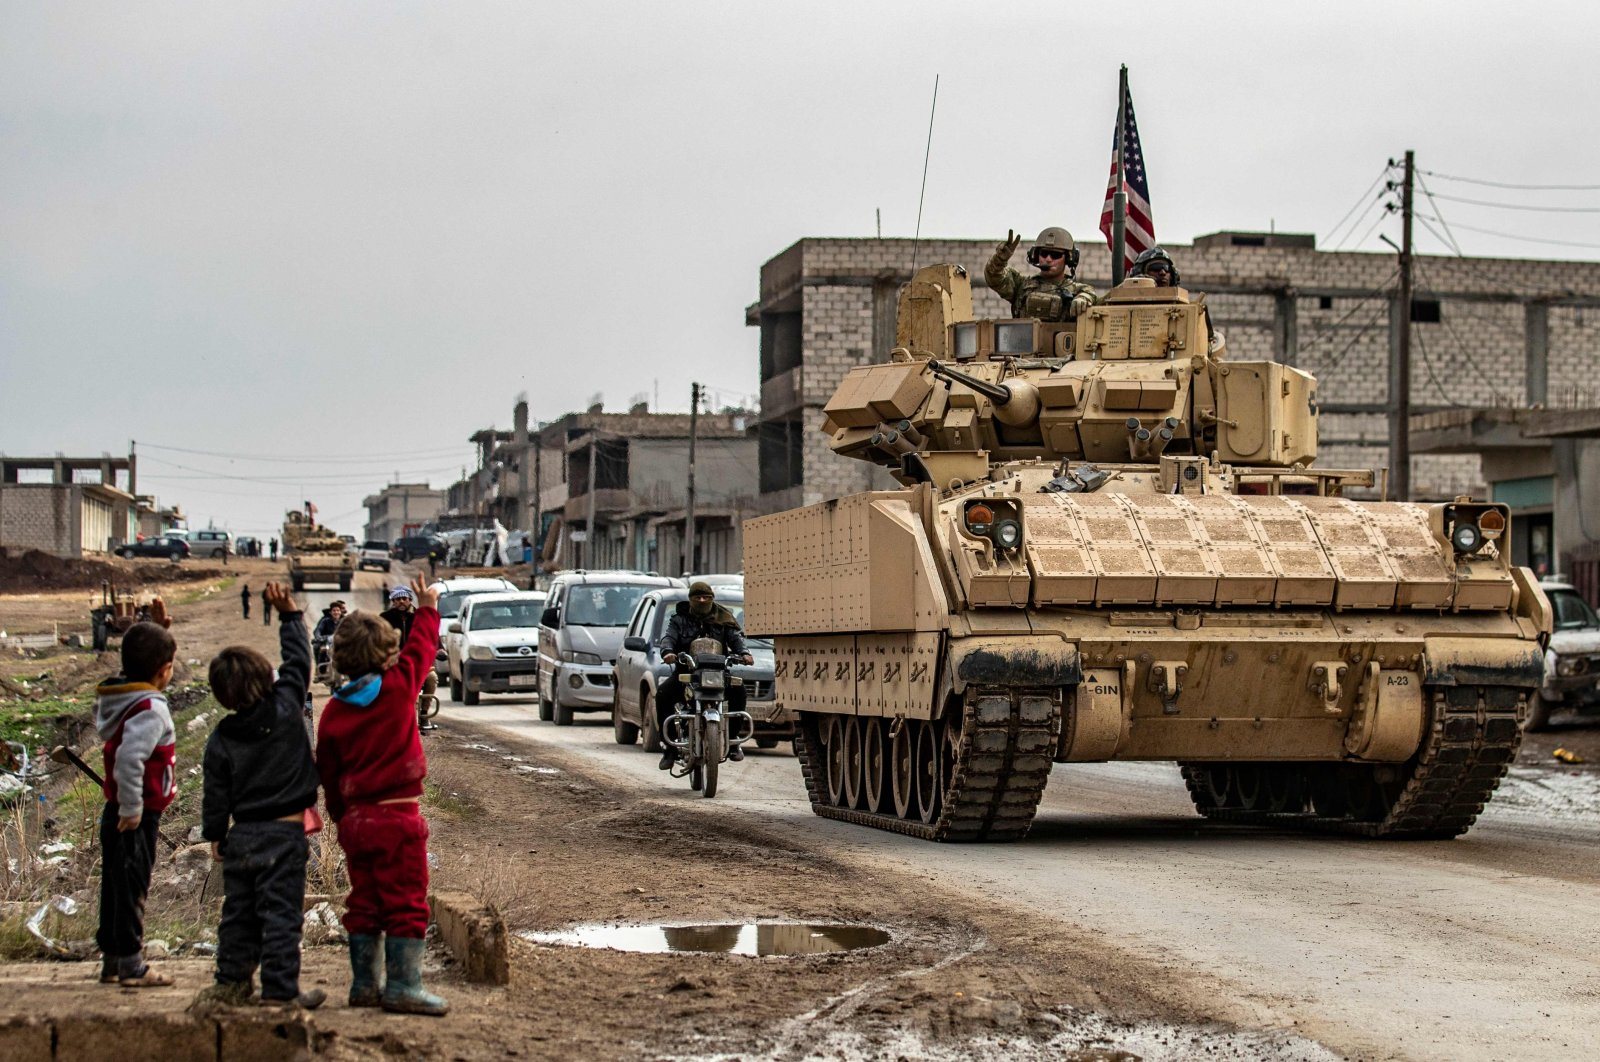 Children greet a U.S. soldier atop a Bradley Fighting Vehicle (BFV) as U.S. troops patrol in the Syrian town of al-Jawadiyah in the northeastern Hassakeh province, Dec. 17, 2020. (AFP Photo)